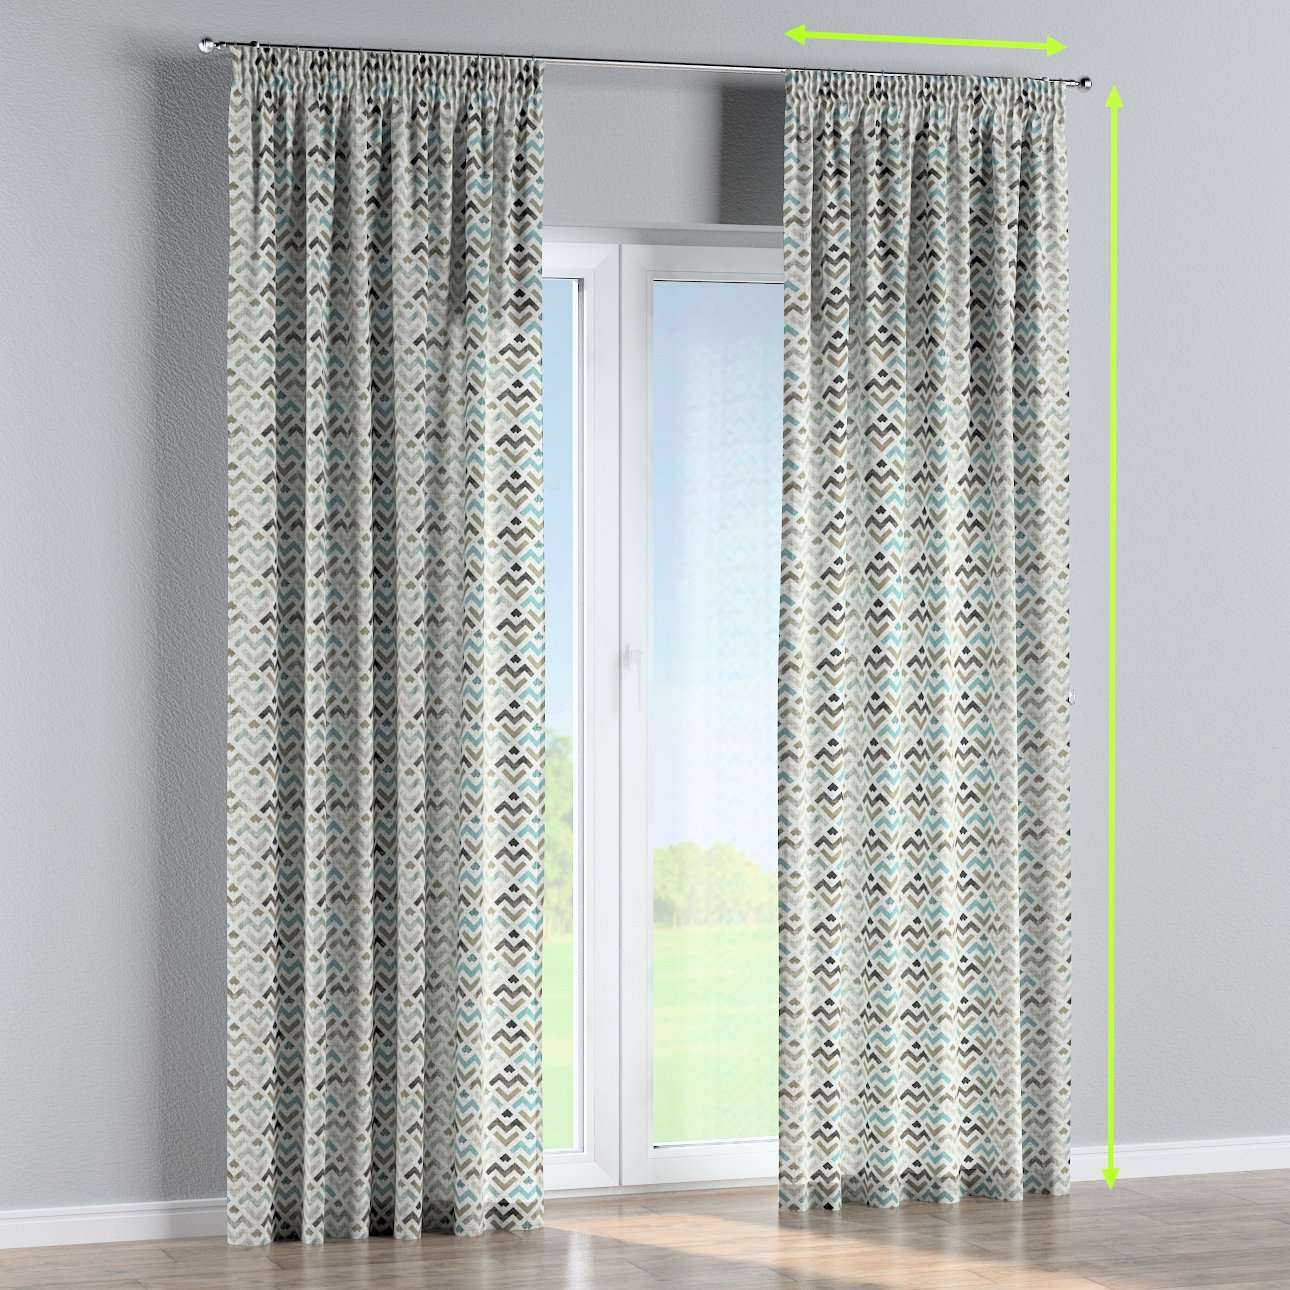 Pencil pleat lined curtains in collection Modern, fabric: 141-93